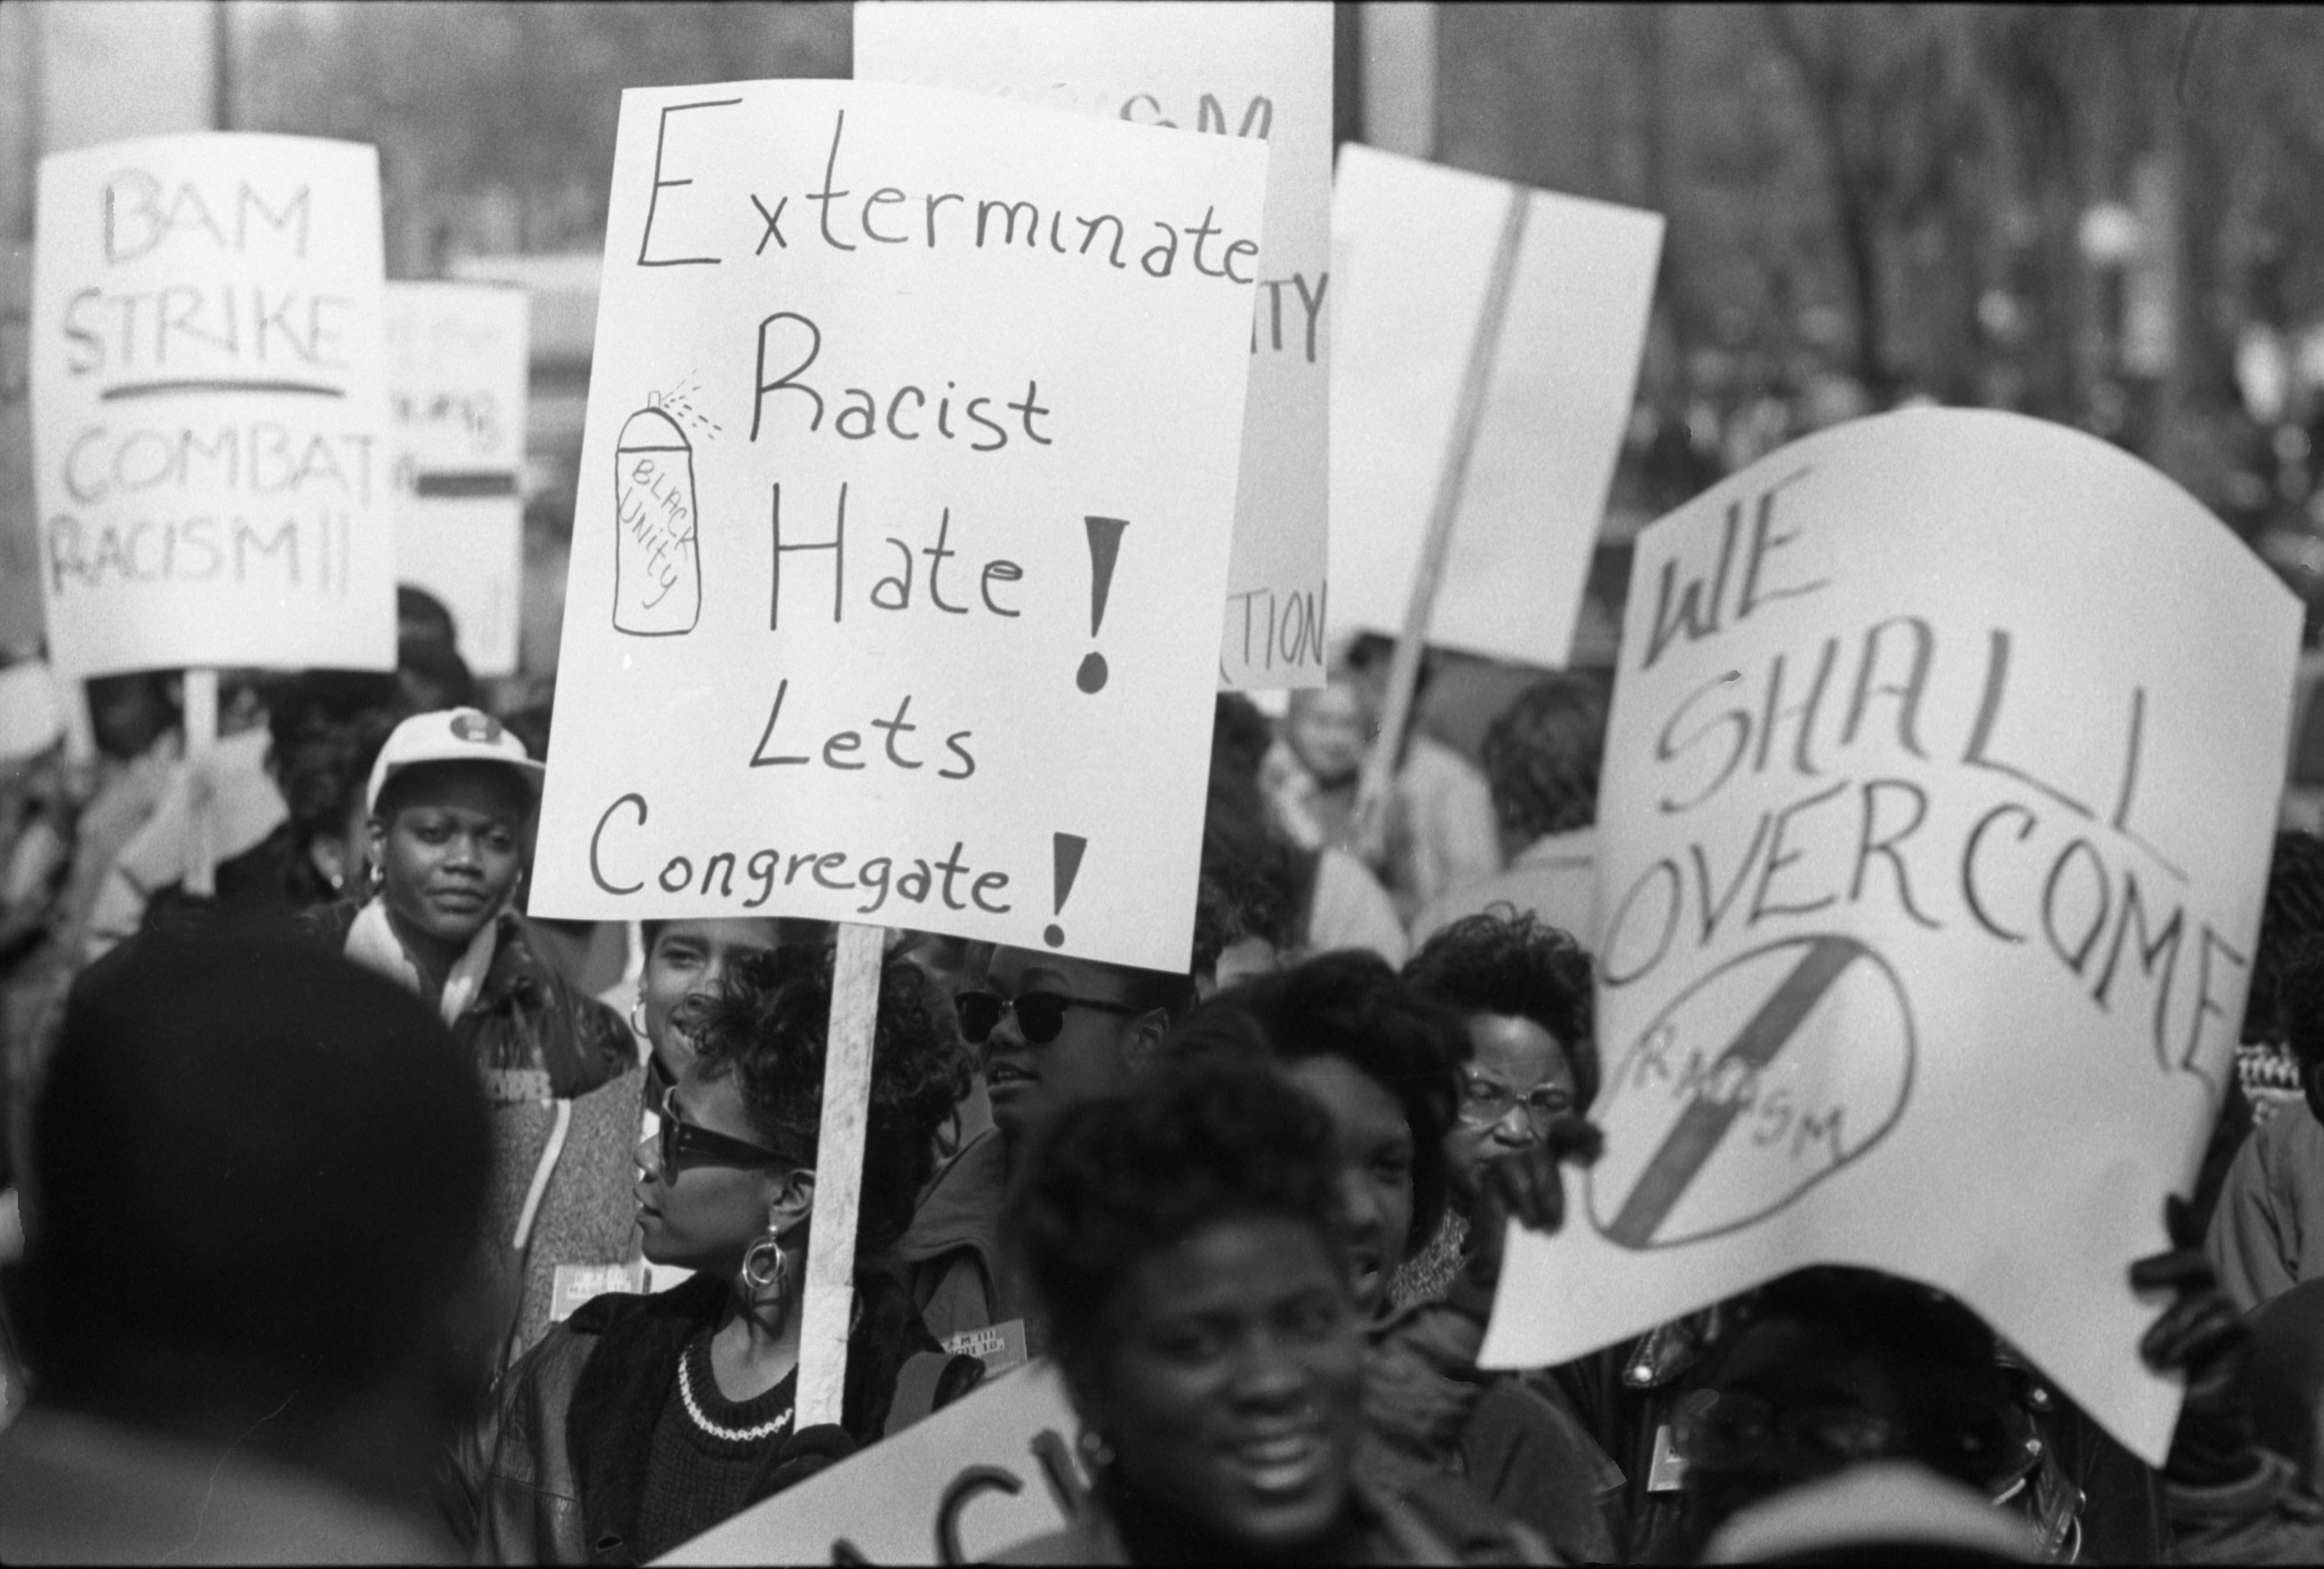 Image from Black Action Movement III March Against Racism, March 19, 1987